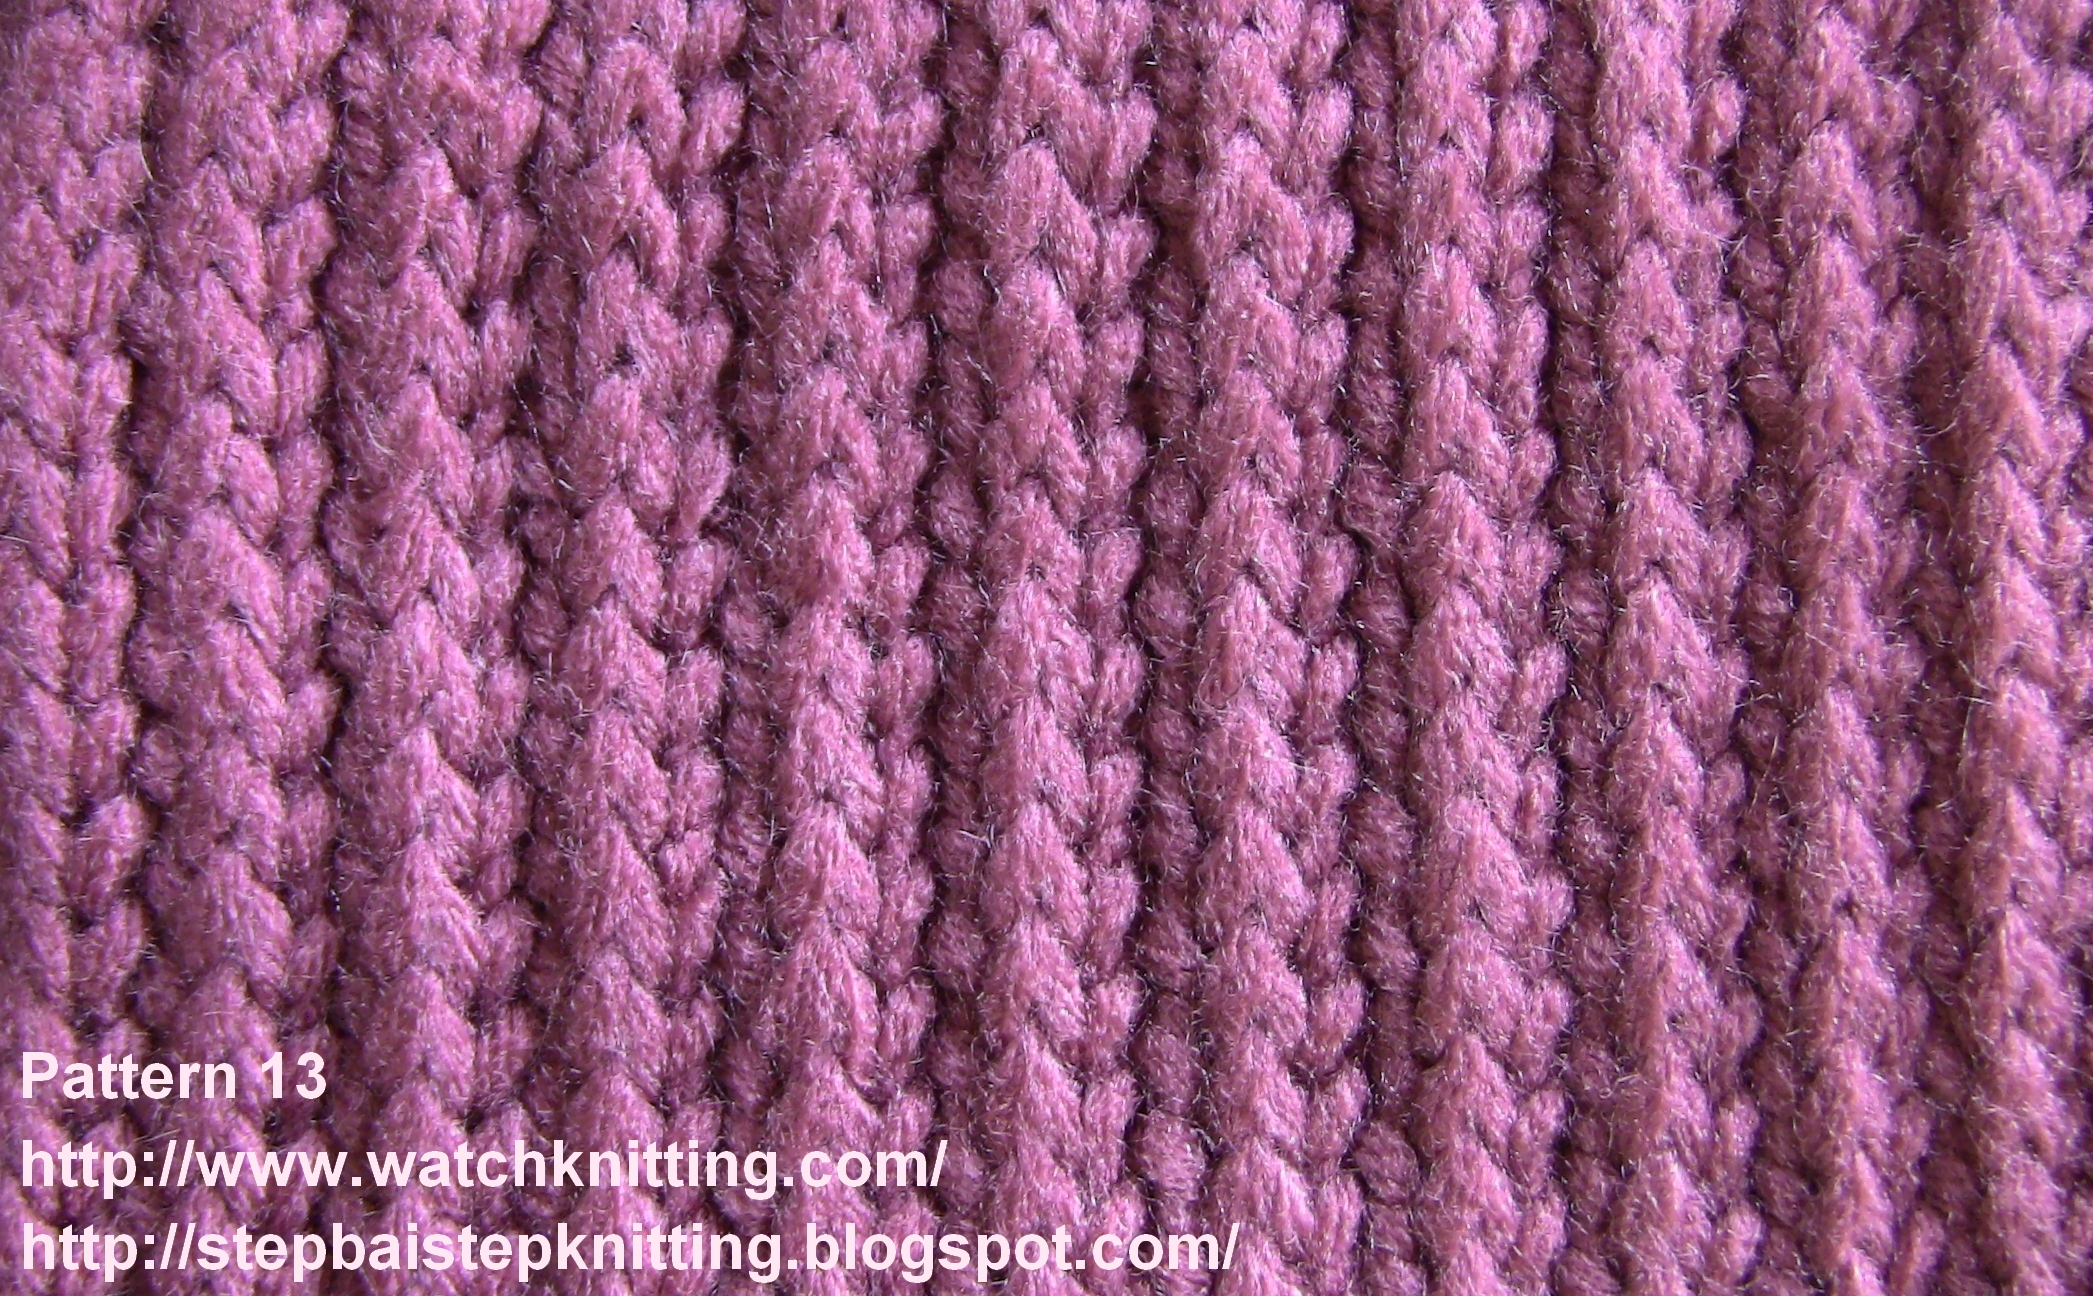 Simple Knitting models by basic stitches - Pattern 13 (Striped Model)